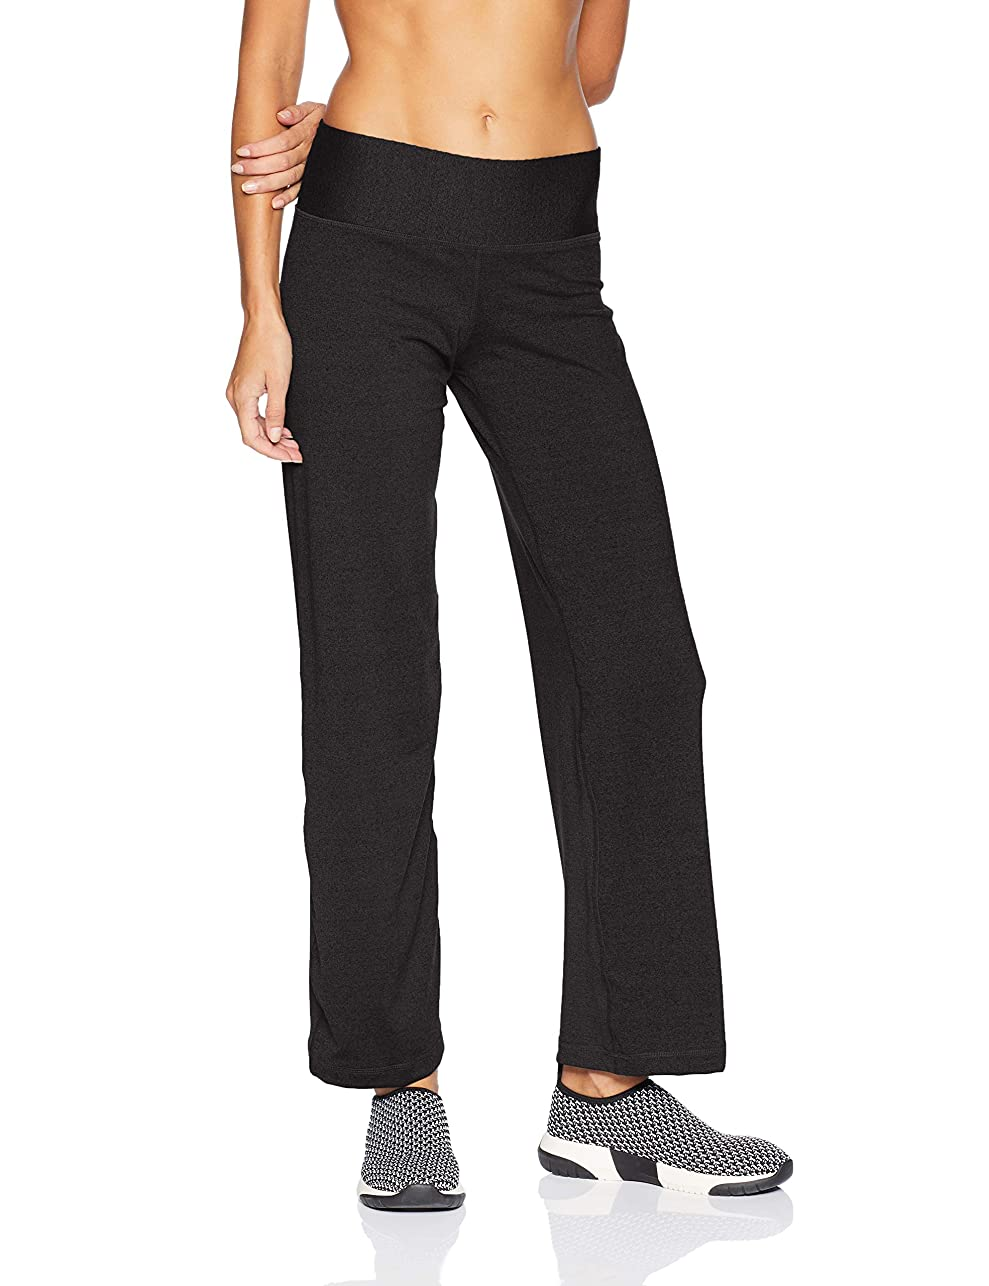 ピッチ威するストリップChampion Women's Absolute Semi-Fit Pant with SmoothTec Waistband, Black, XLS